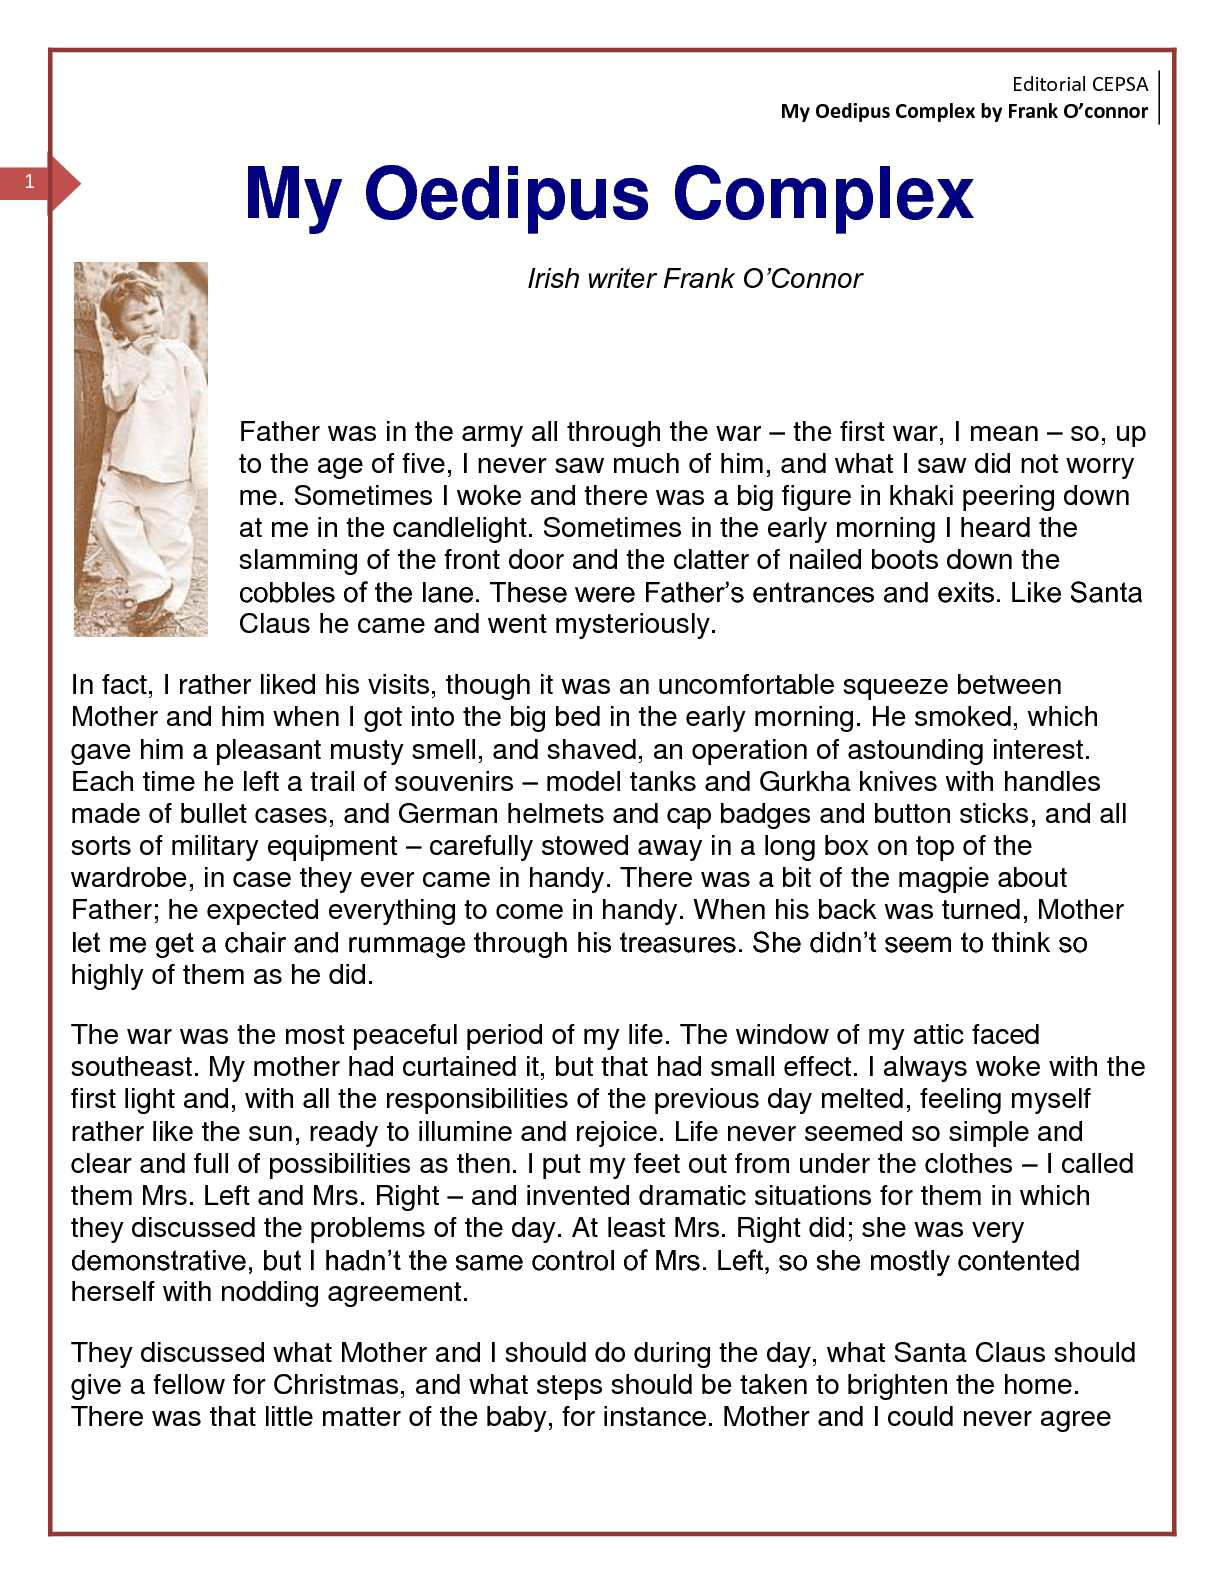 my oedipus complex by frank o connor essay com my oedipus complex by frank o connor essay